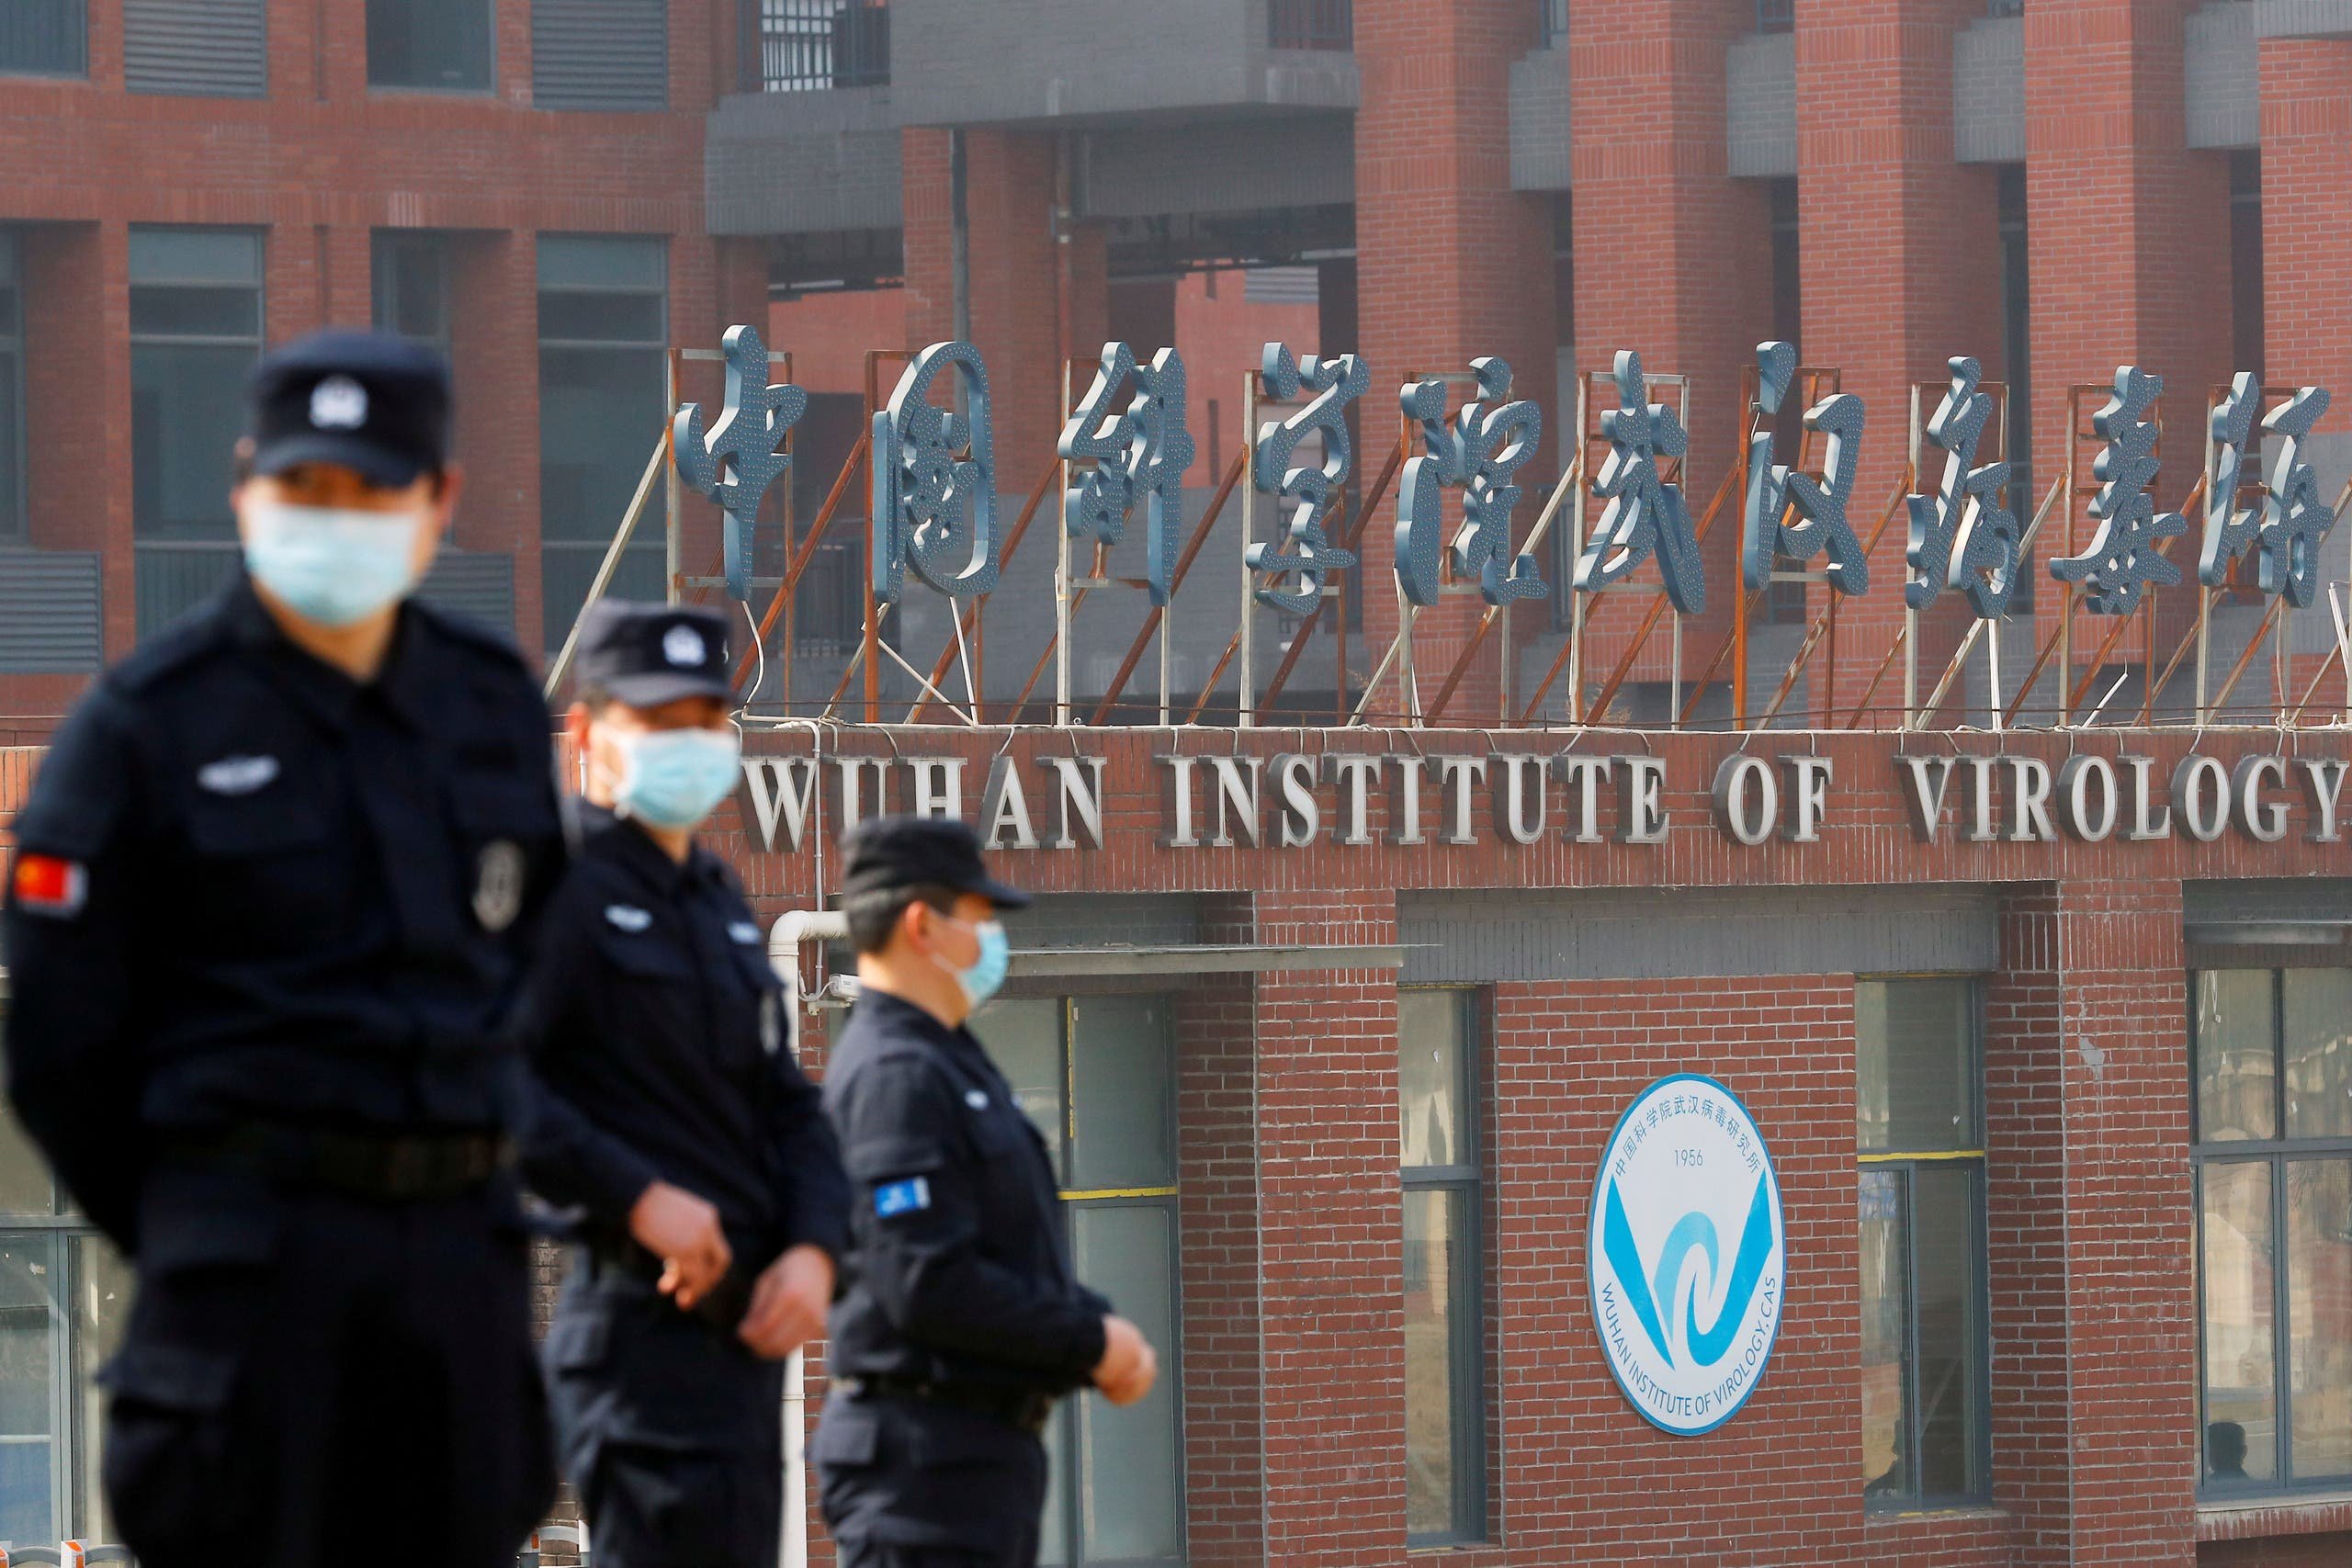 The Wuhan Institute of Virology during the visit by the World Health Organization (WHO) team tasked with investigating the origins of the coronavirus disease